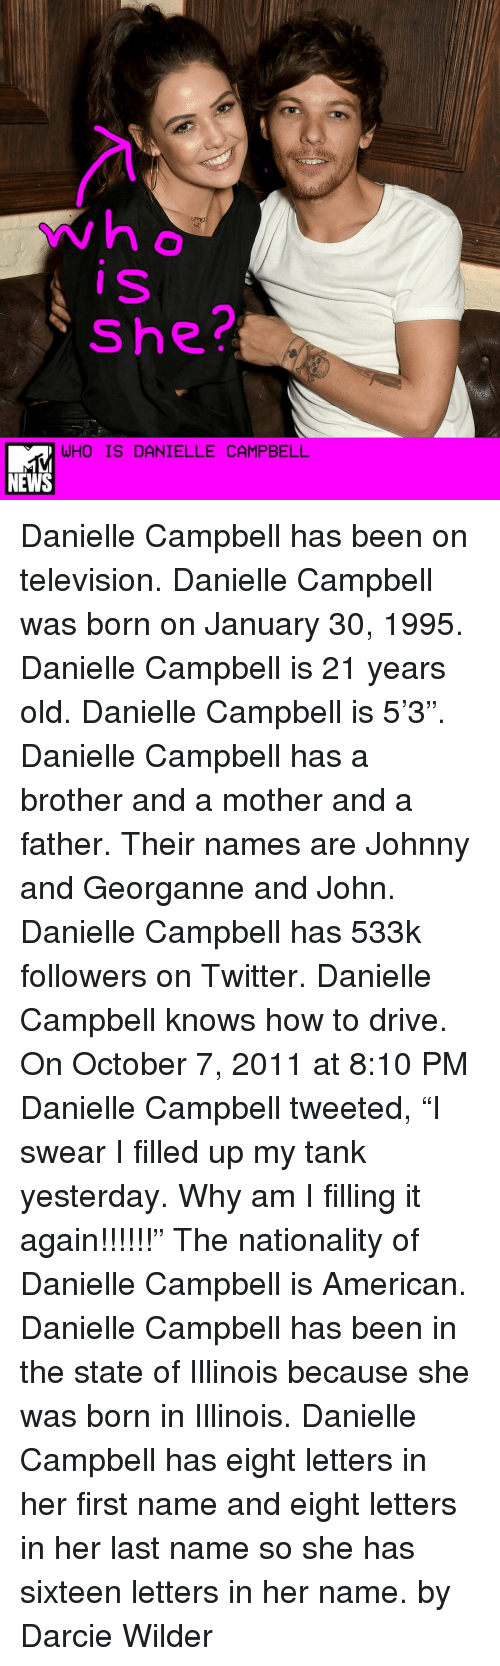 """Johnnies: she?  WHO IS DANIELLE CAMPBELL  NEWS Danielle Campbell has been on television. Danielle Campbell was born on January 30, 1995. Danielle Campbell is 21 years old. Danielle Campbell is 5'3"""". Danielle Campbell has a brother and a mother and a father. Their names are Johnny and Georganne and John. Danielle Campbell has 533k followers on Twitter. Danielle Campbell knows how to drive. On October 7, 2011 at 8:10 PM Danielle Campbell tweeted, """"I swear I filled up my tank yesterday. Why am I filling it again!!!!!!"""" The nationality of Danielle Campbell is American. Danielle Campbell has been in the state of Illinois because she was born in Illinois. Danielle Campbell has eight letters in her first name and eight letters in her last name so she has sixteen letters in her name. by Darcie Wilder"""